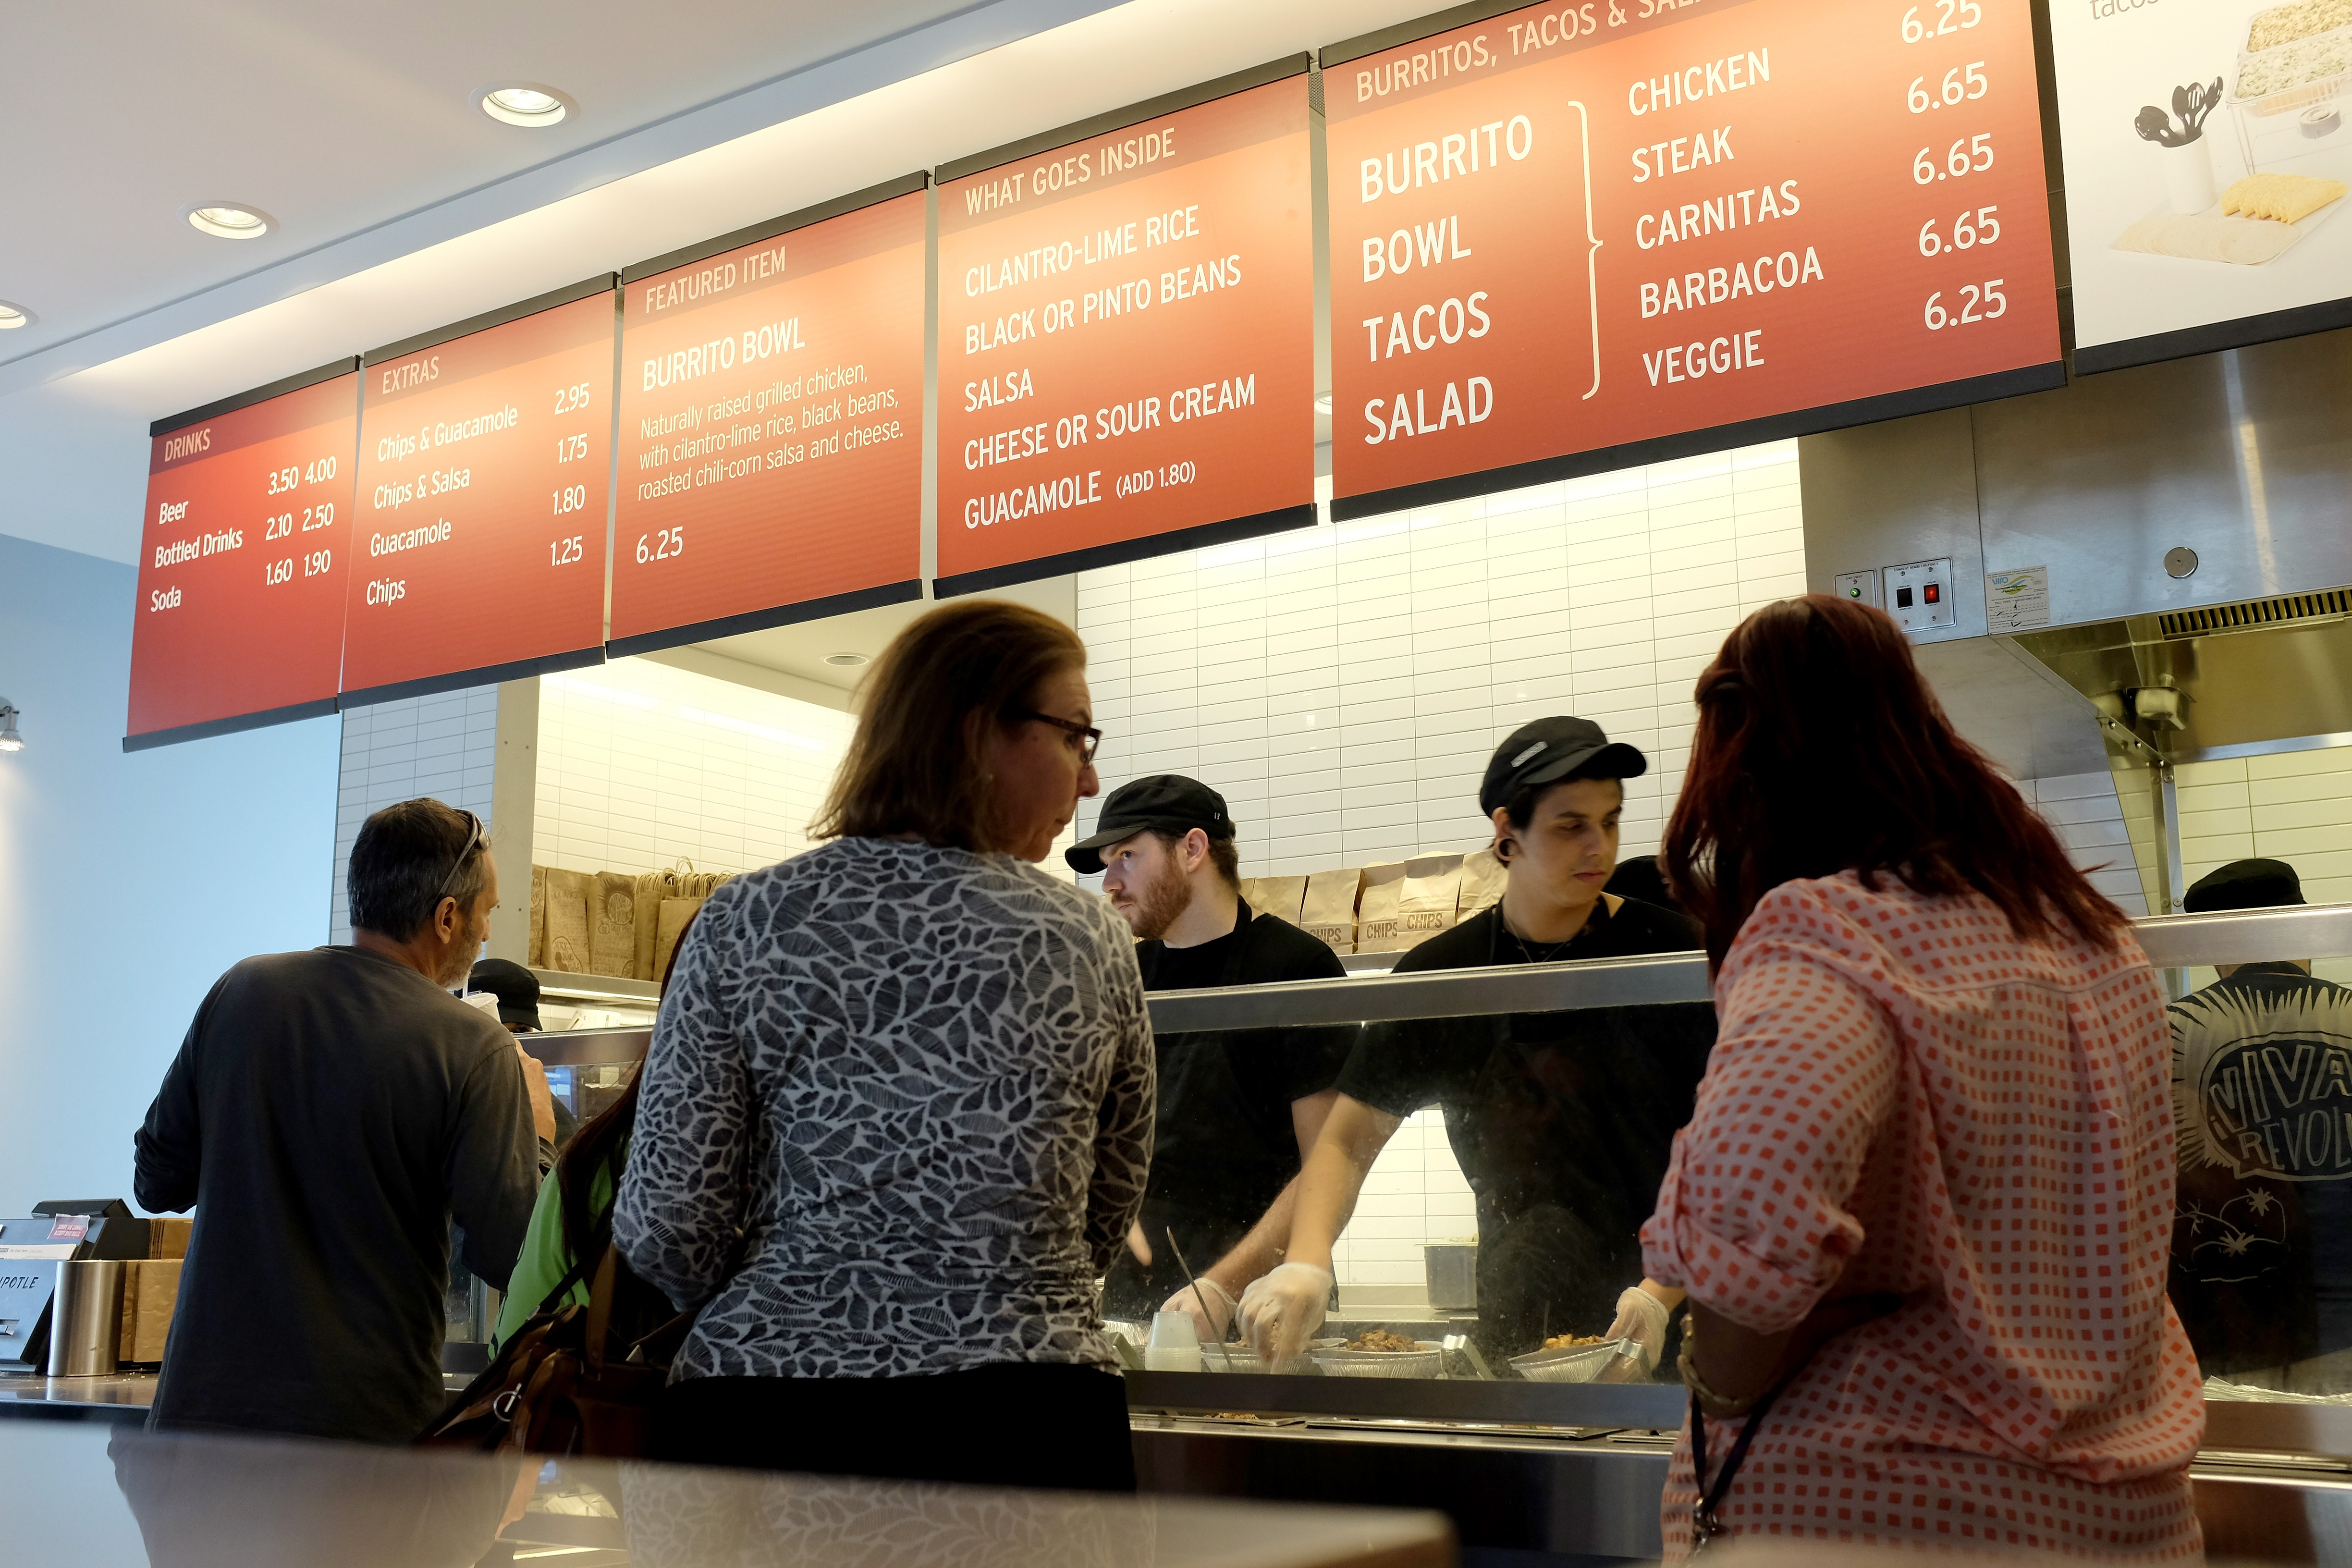 Chipotle's Infamous 'Quesarito' Now Has a Standard Price